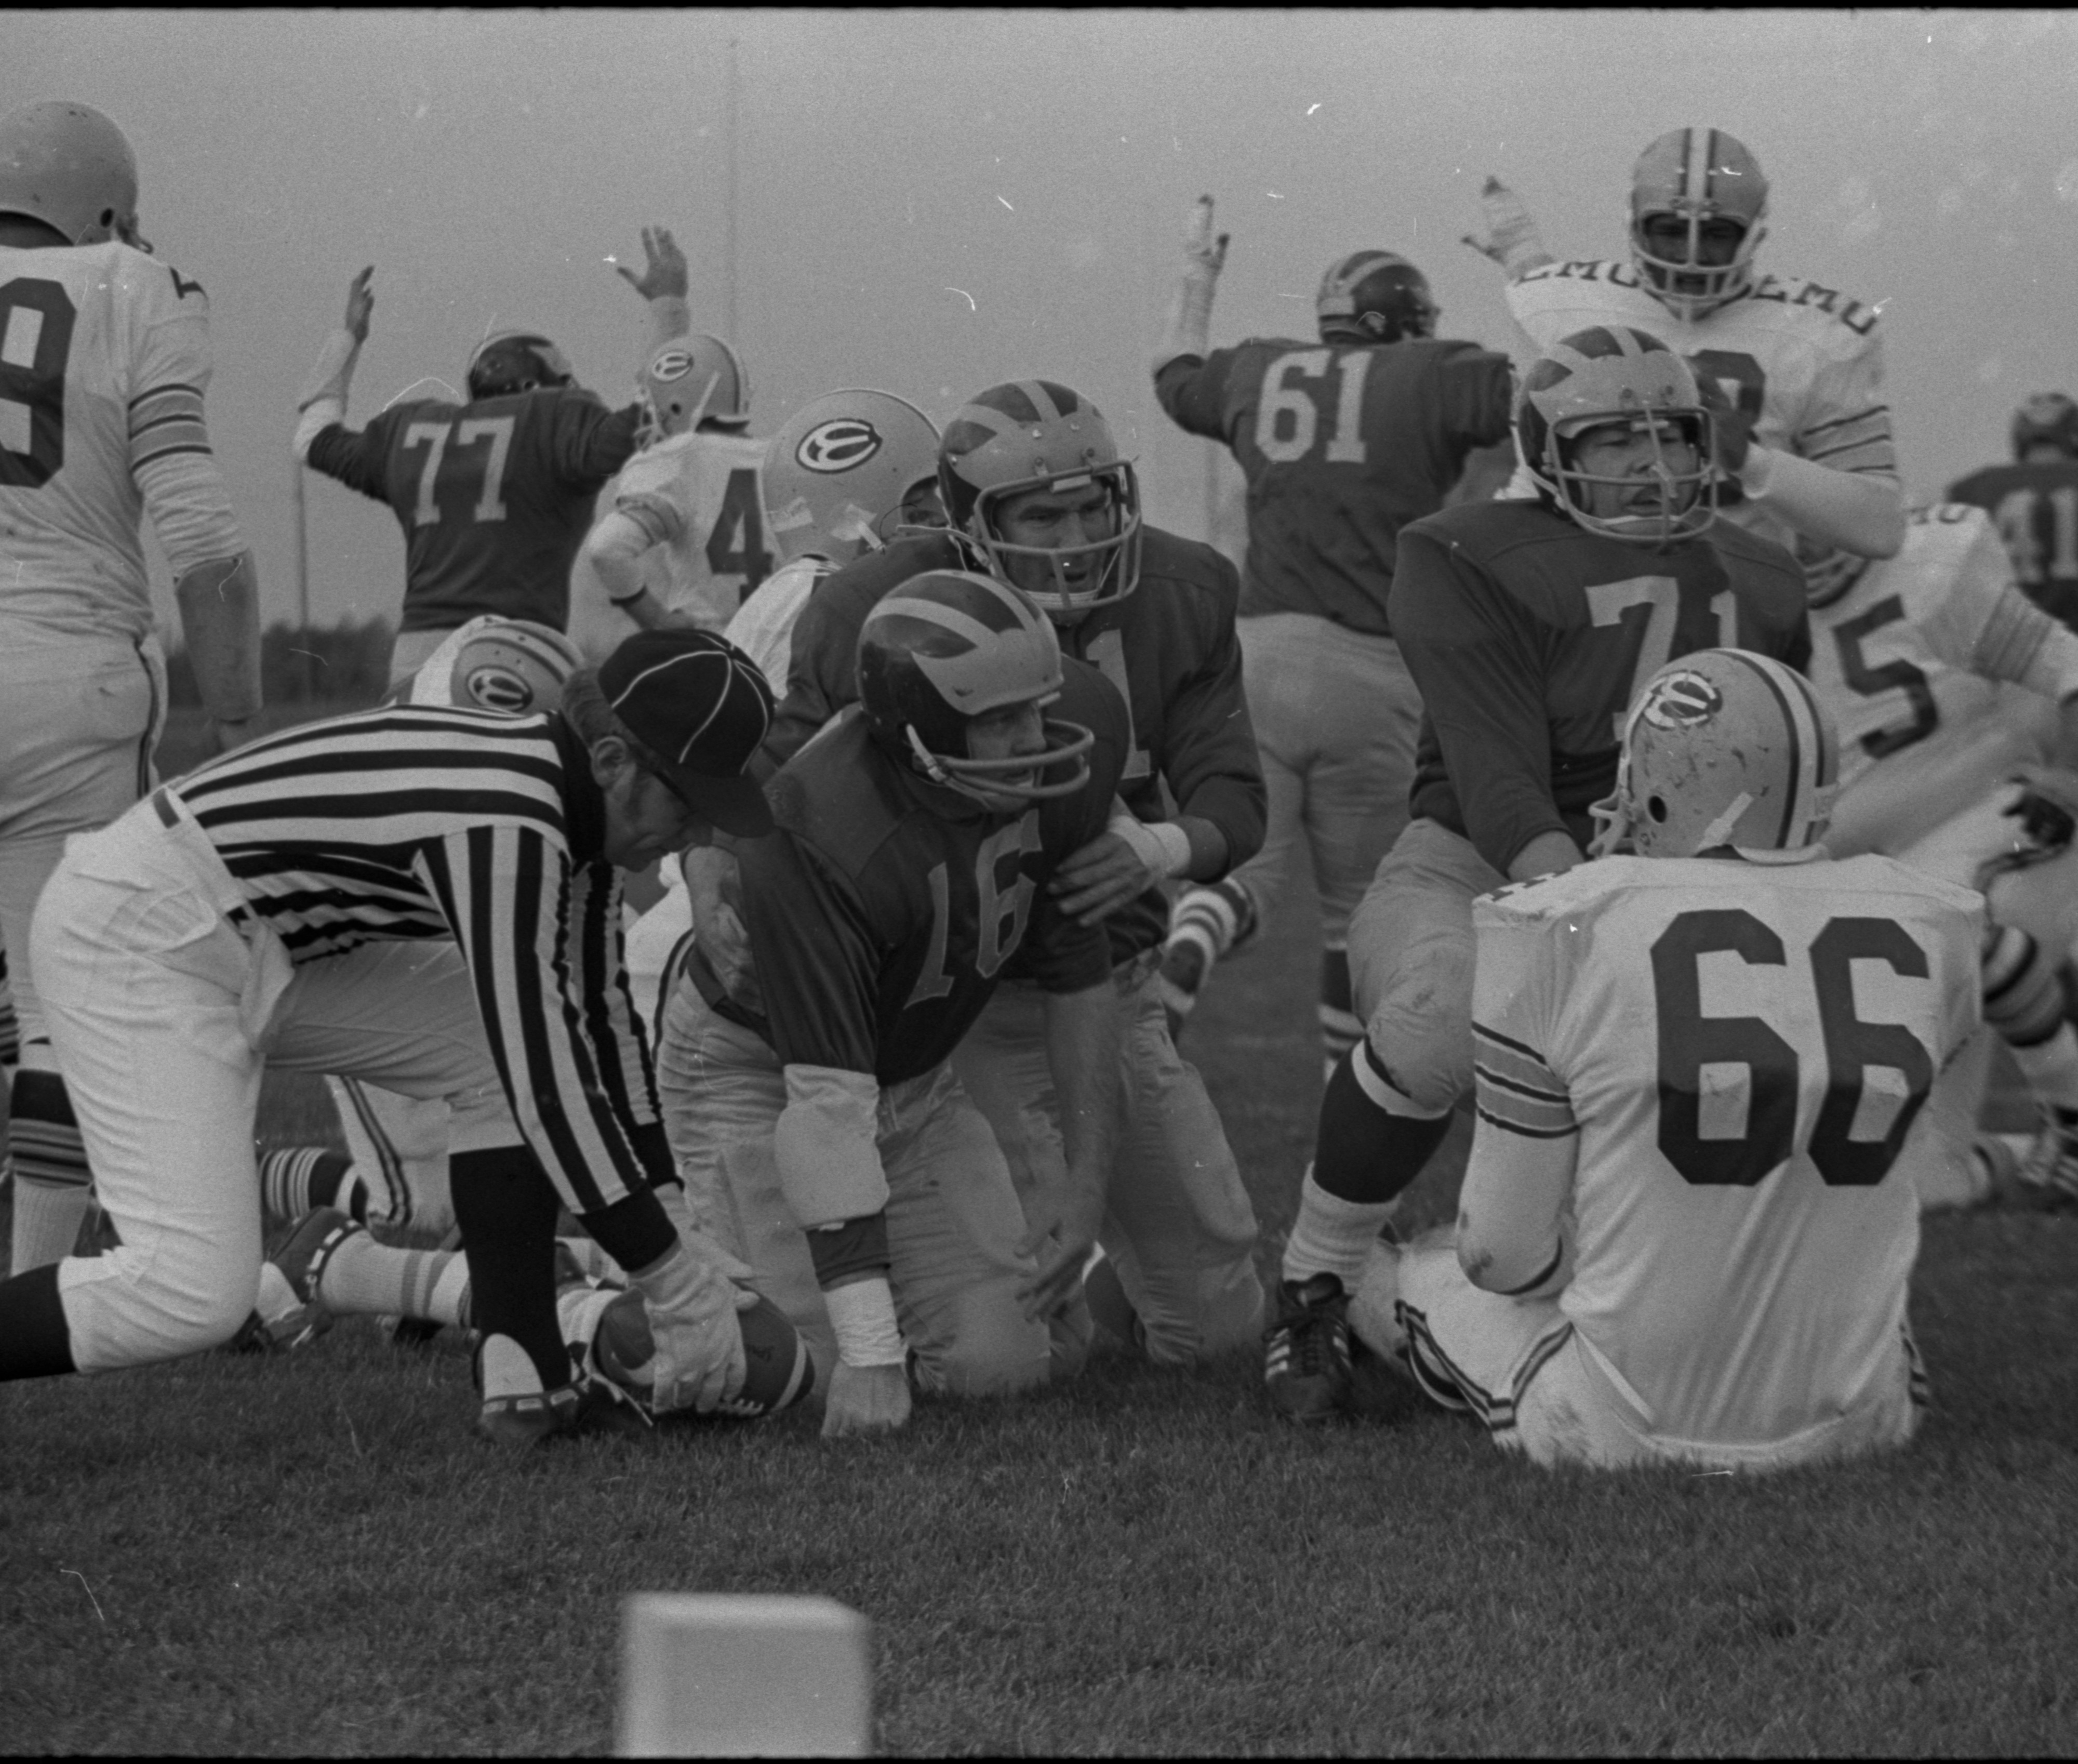 Washtenaw County Sheriff's Department  vs. Ann Arbor Police In Annual Pig Bowl Game, November 1971 image